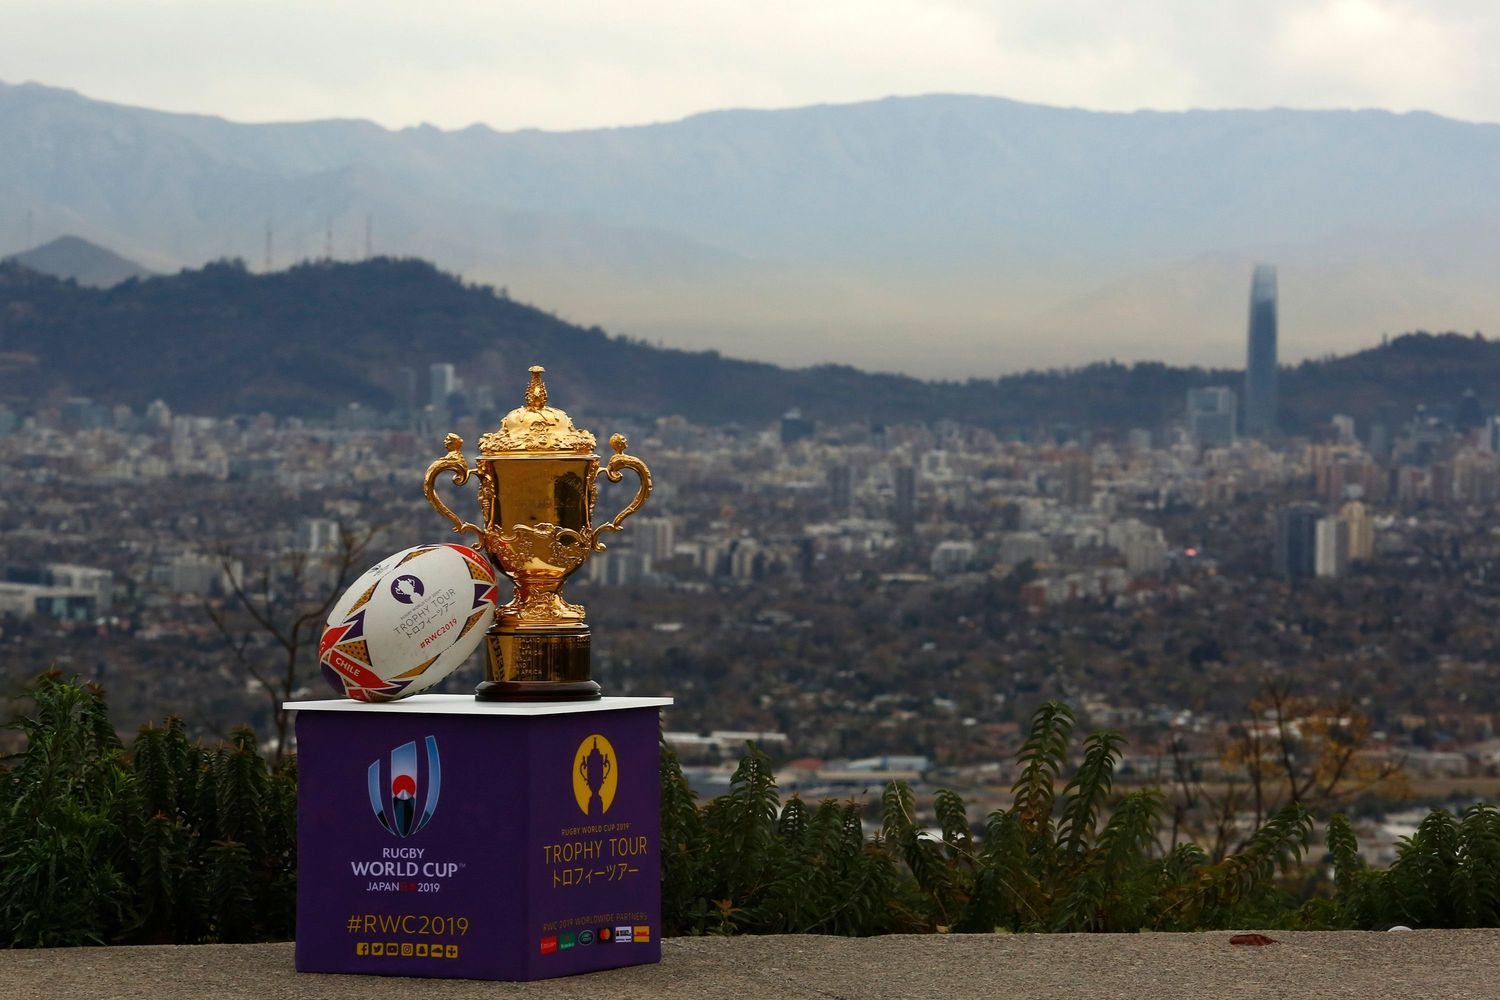 Rugby World Cup 2019 Trophy Tour - Chile: Day One